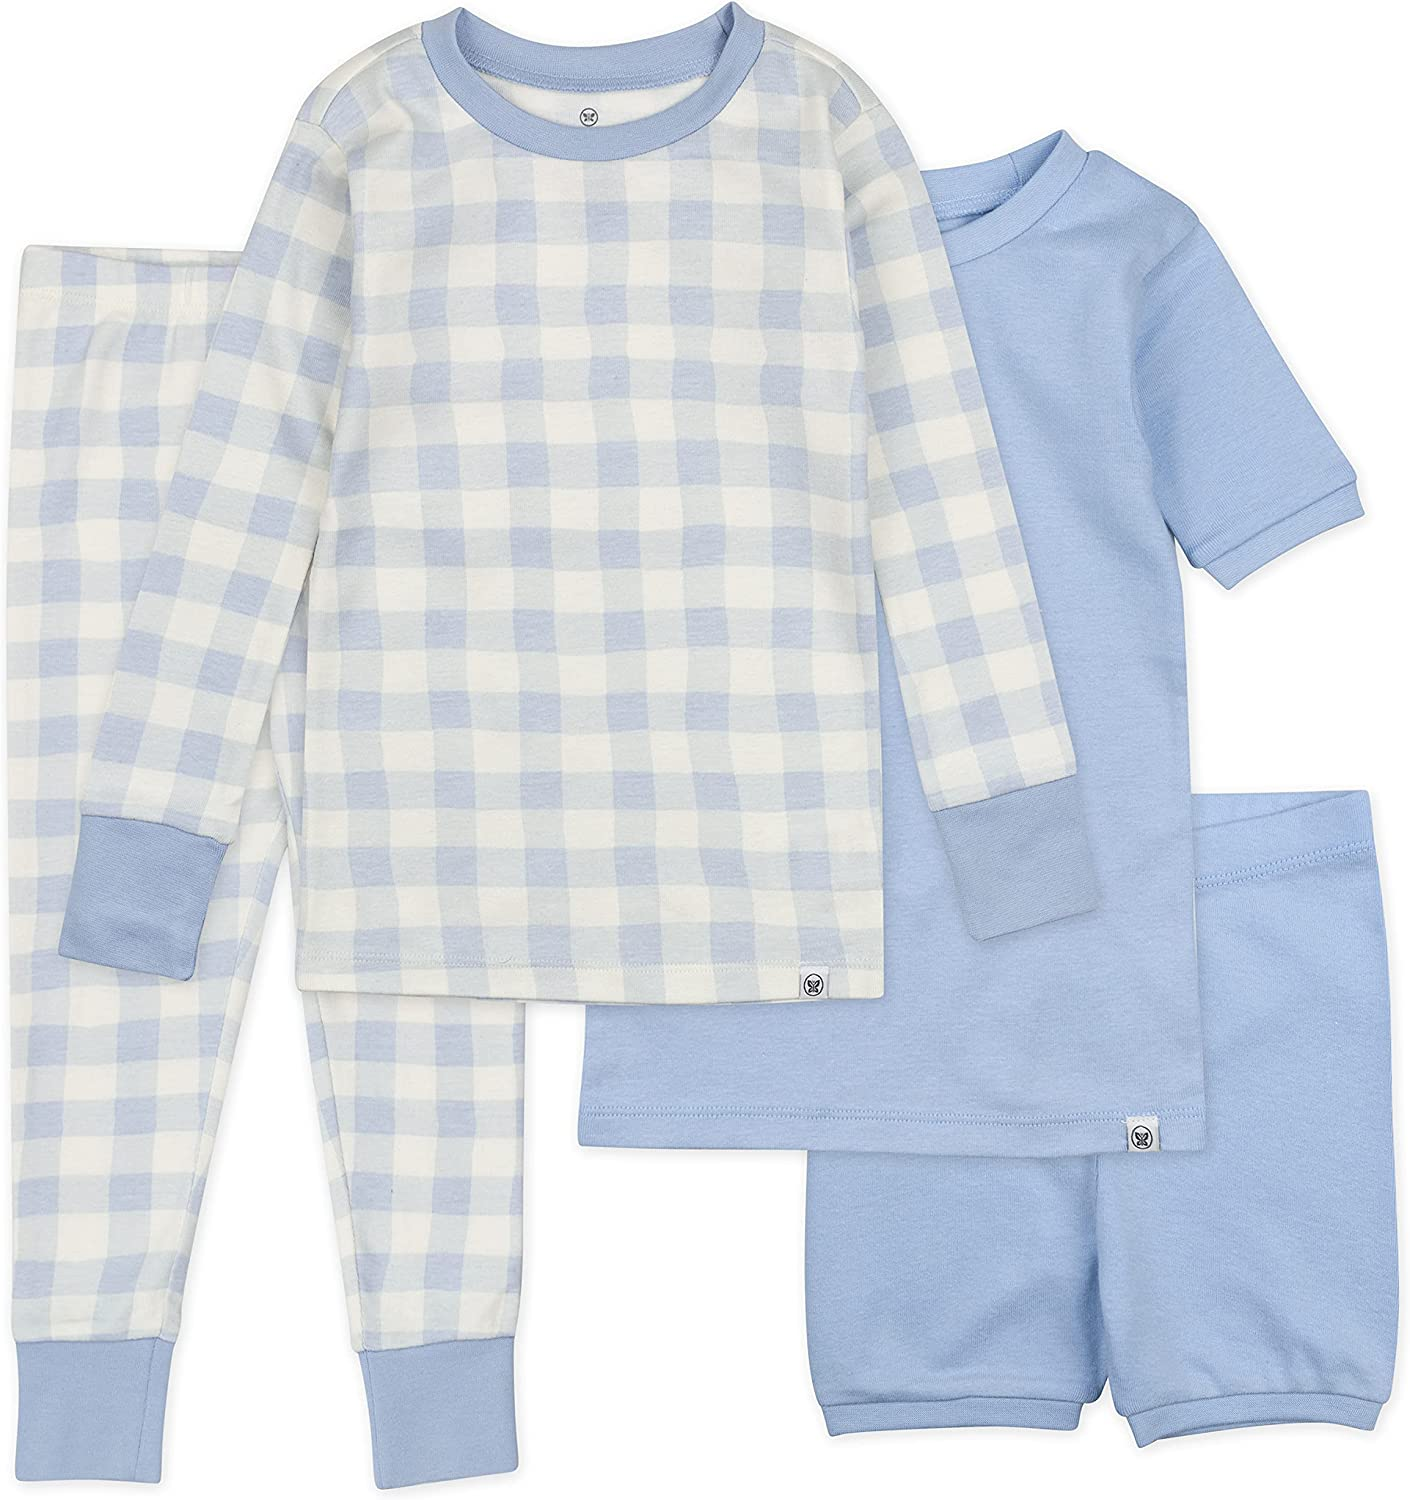 HonestBaby Baby 4-Piece Organic Cotton Short and Long PJ Set, Blue Painted Buffalo Check, 24 Months